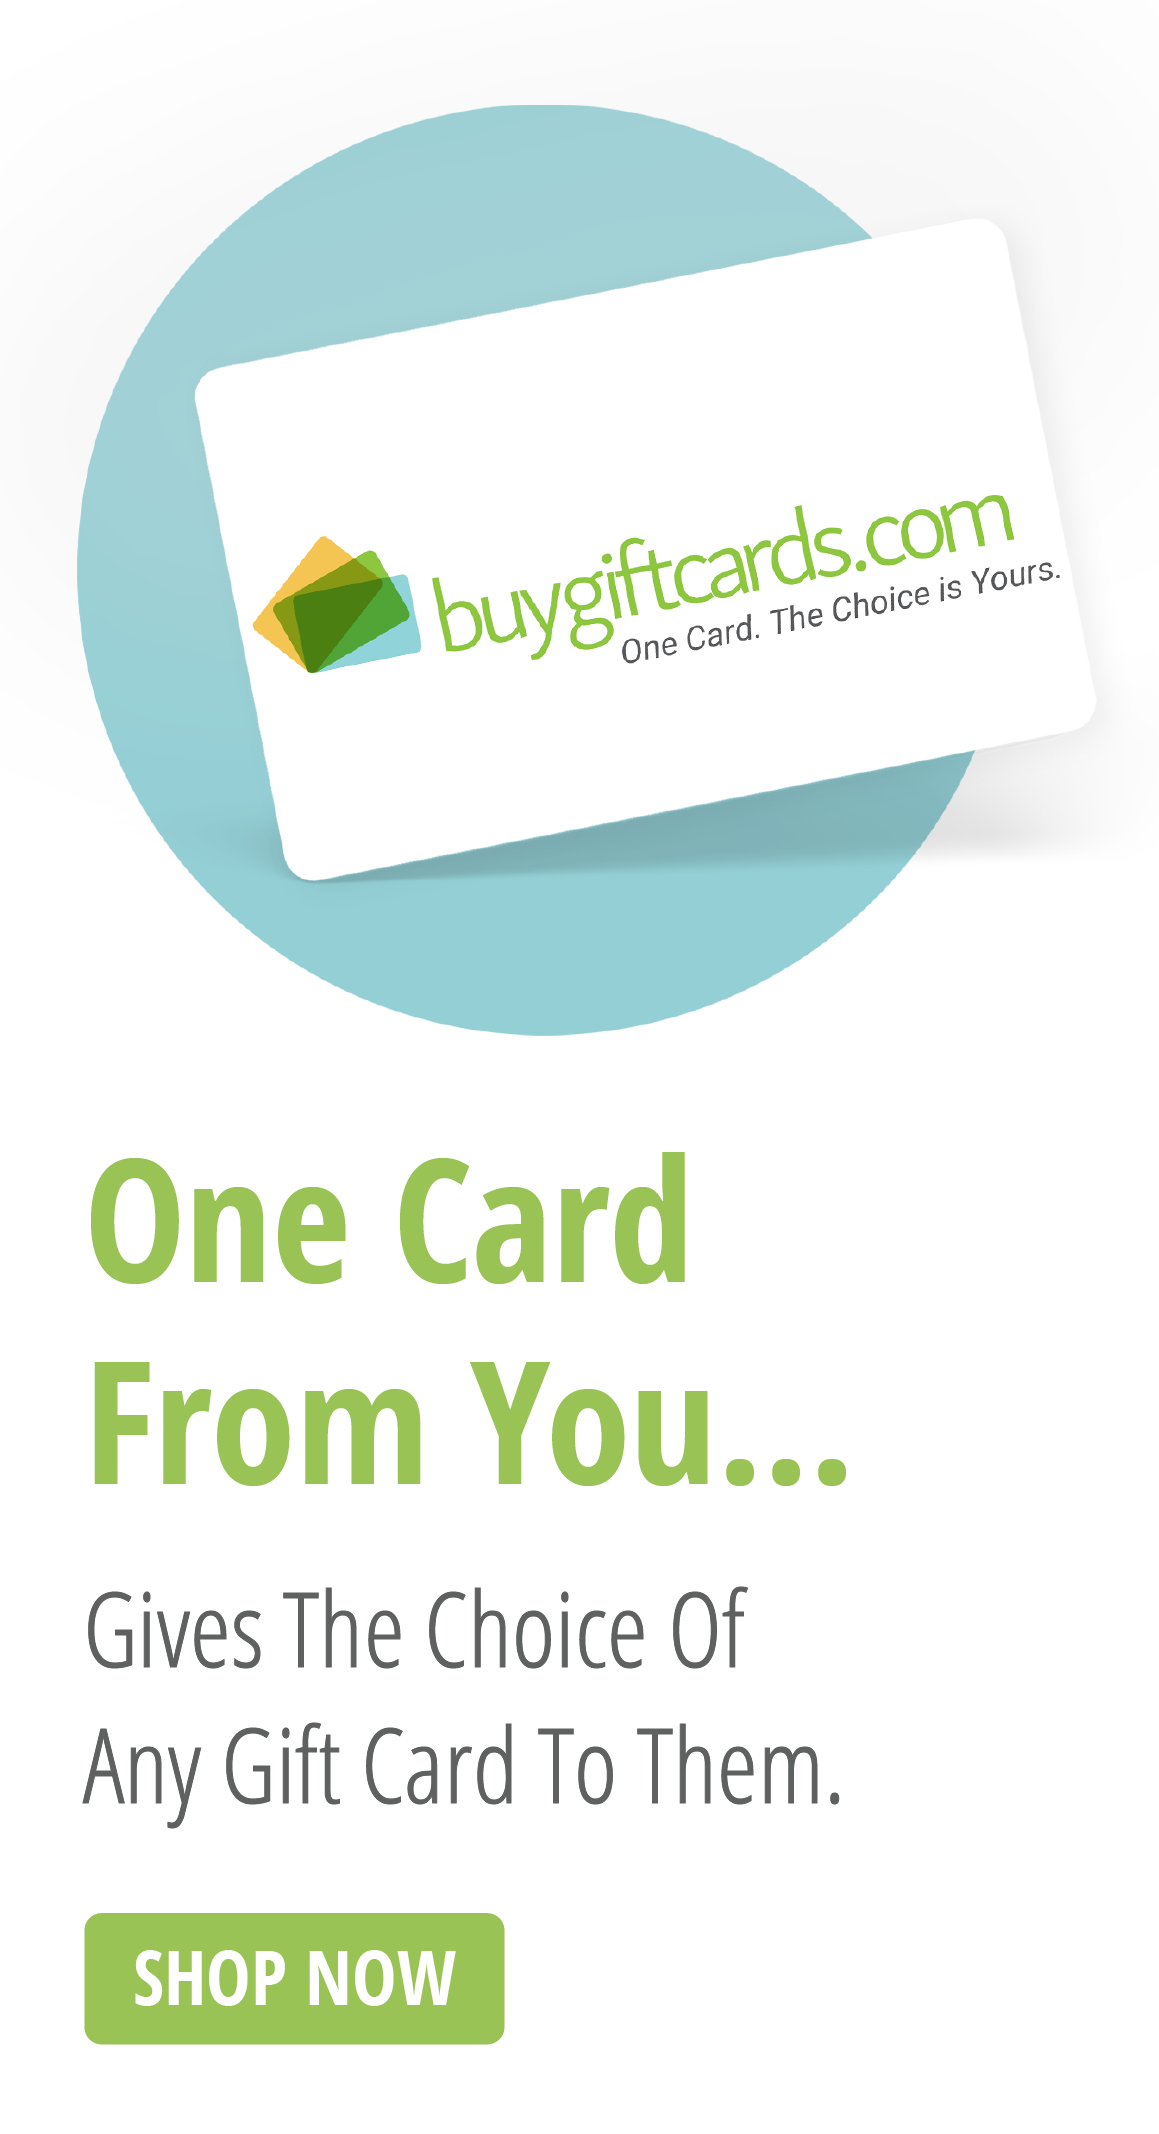 One Card From You Give Them Hundreds of Choices